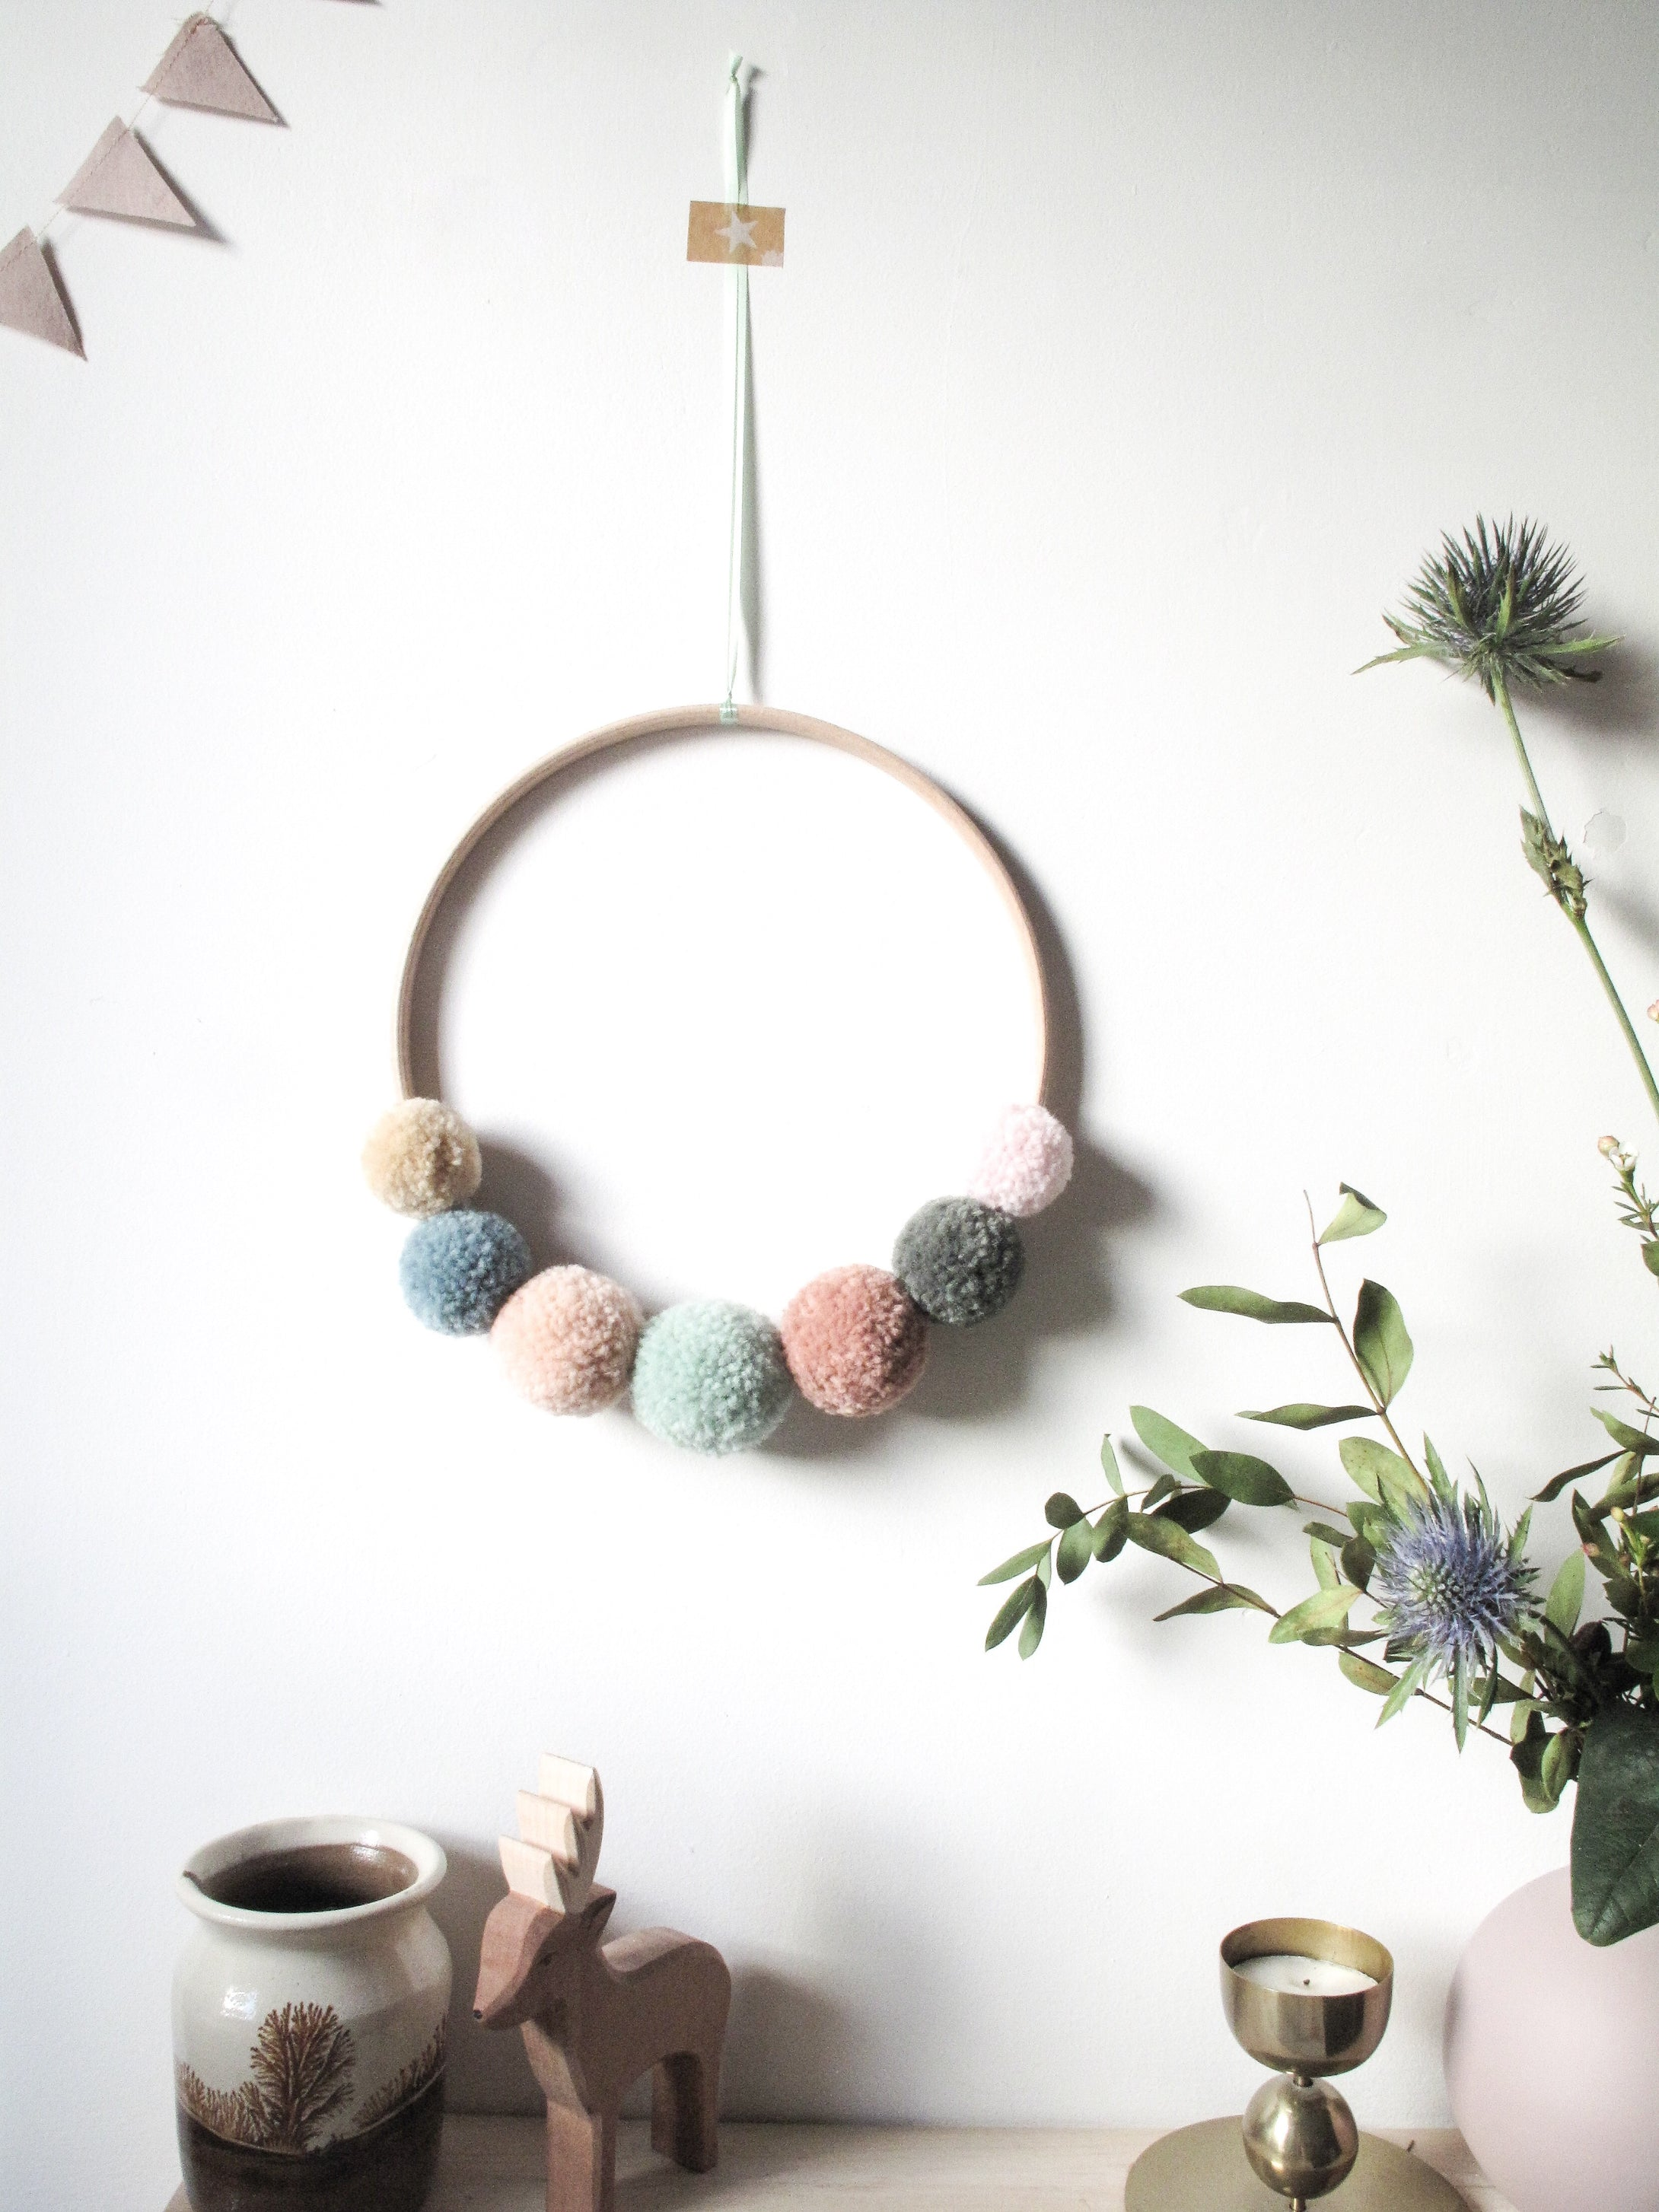 Small Pom Pom Wreath in Soft Pastels